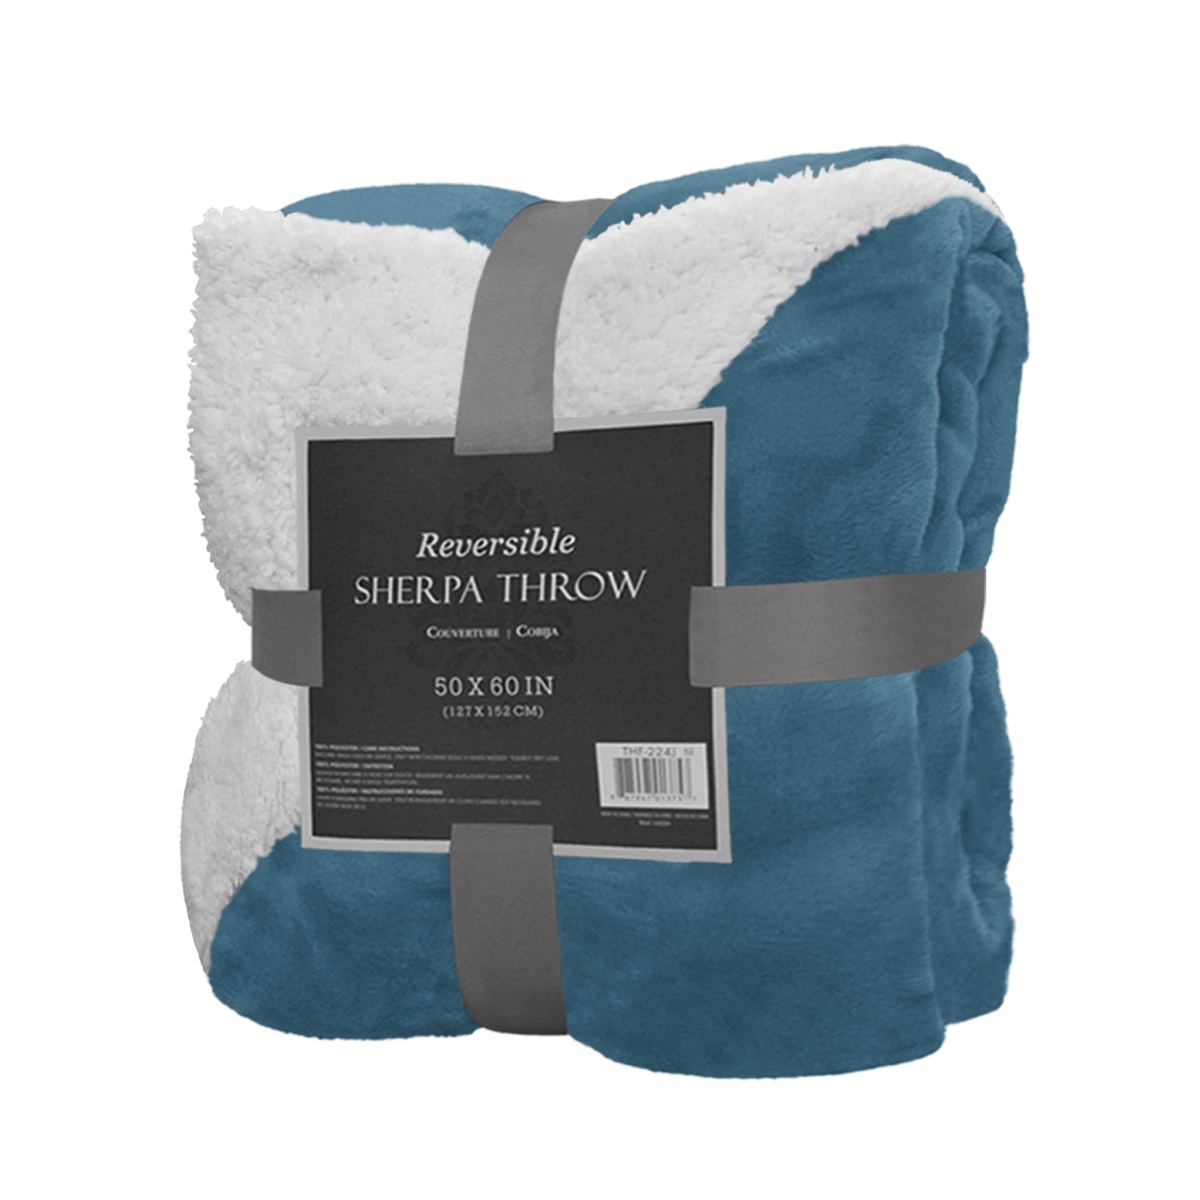 reversible sherpa throw blanket 50 x 60 color warm soft plush